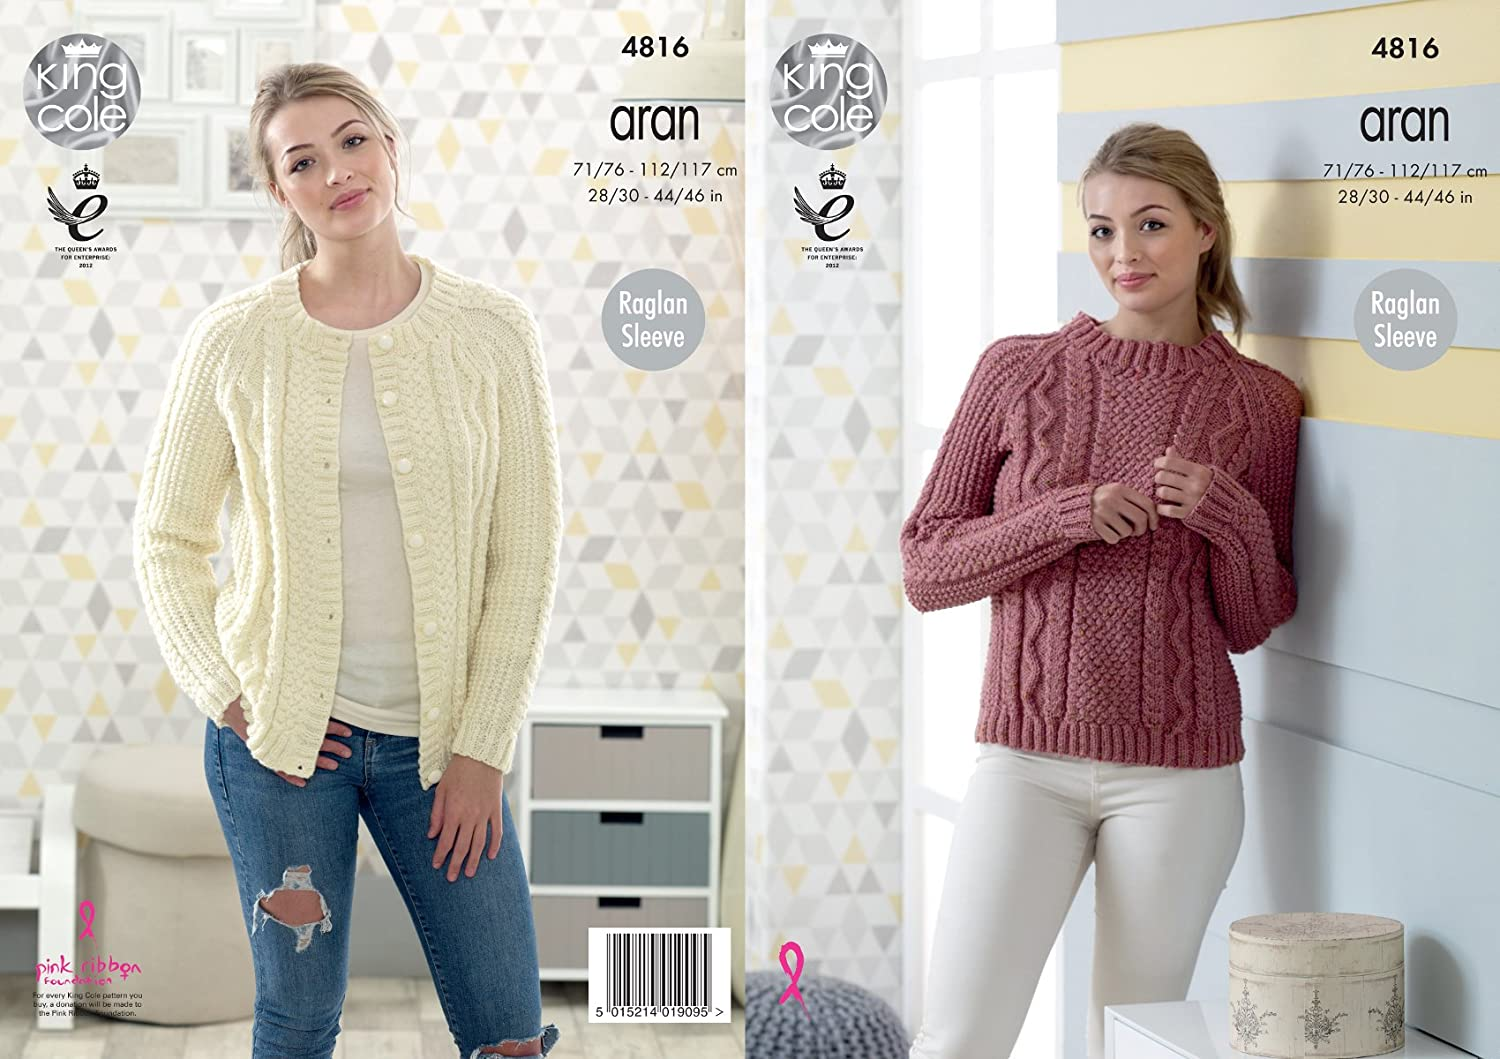 f3ceb60f2 King Cole Ladies Aran Knitting Pattern Womens Raglan Sleeve Cable Knit  Cardigan   Sweater (4816)  Amazon.co.uk  Kitchen   Home